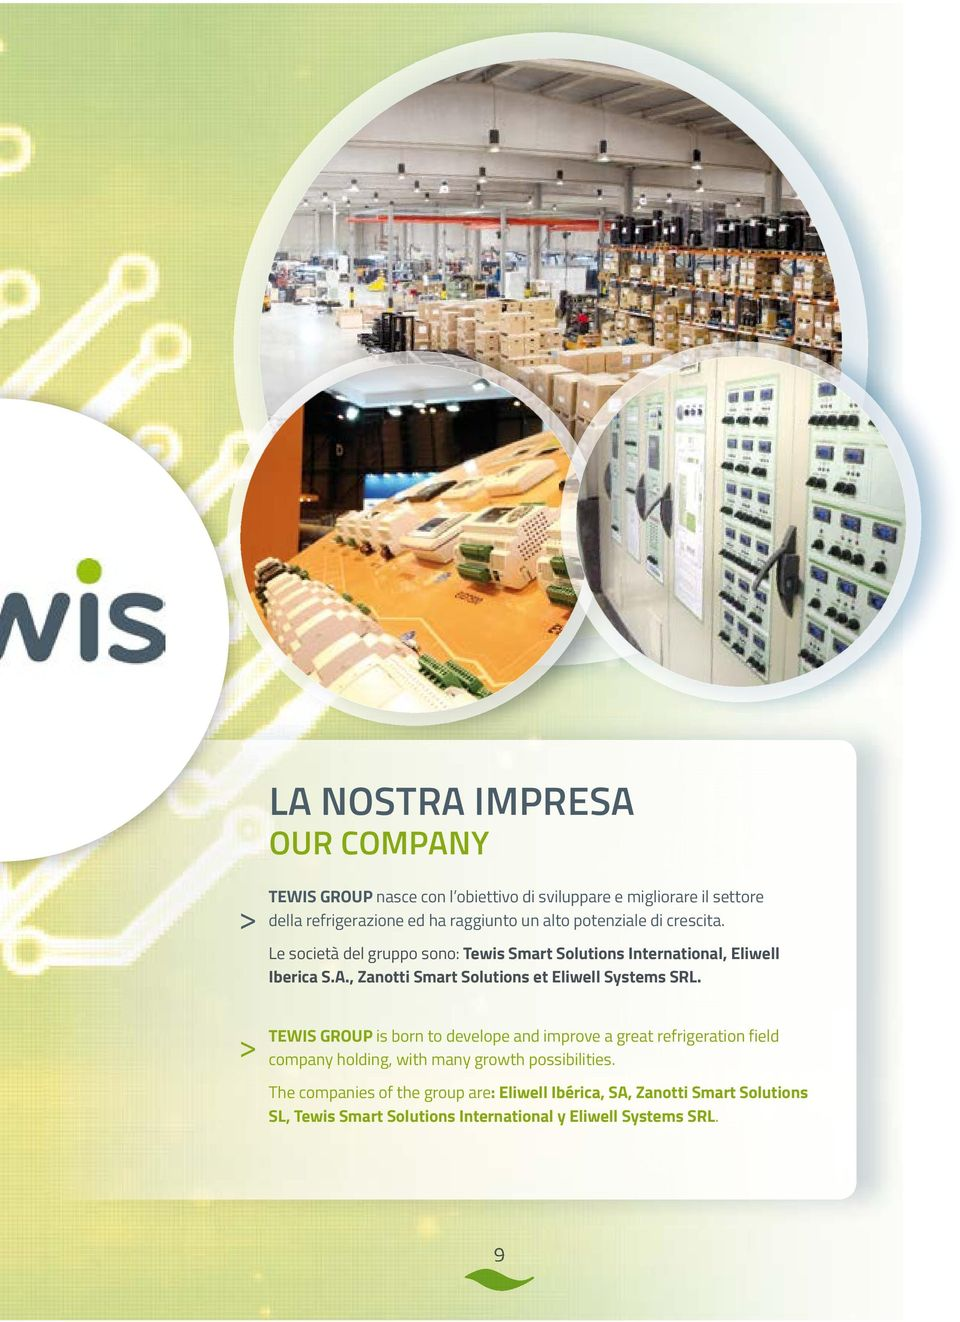 , Zanotti Smart Solutions et Eliwell Systems SRL.